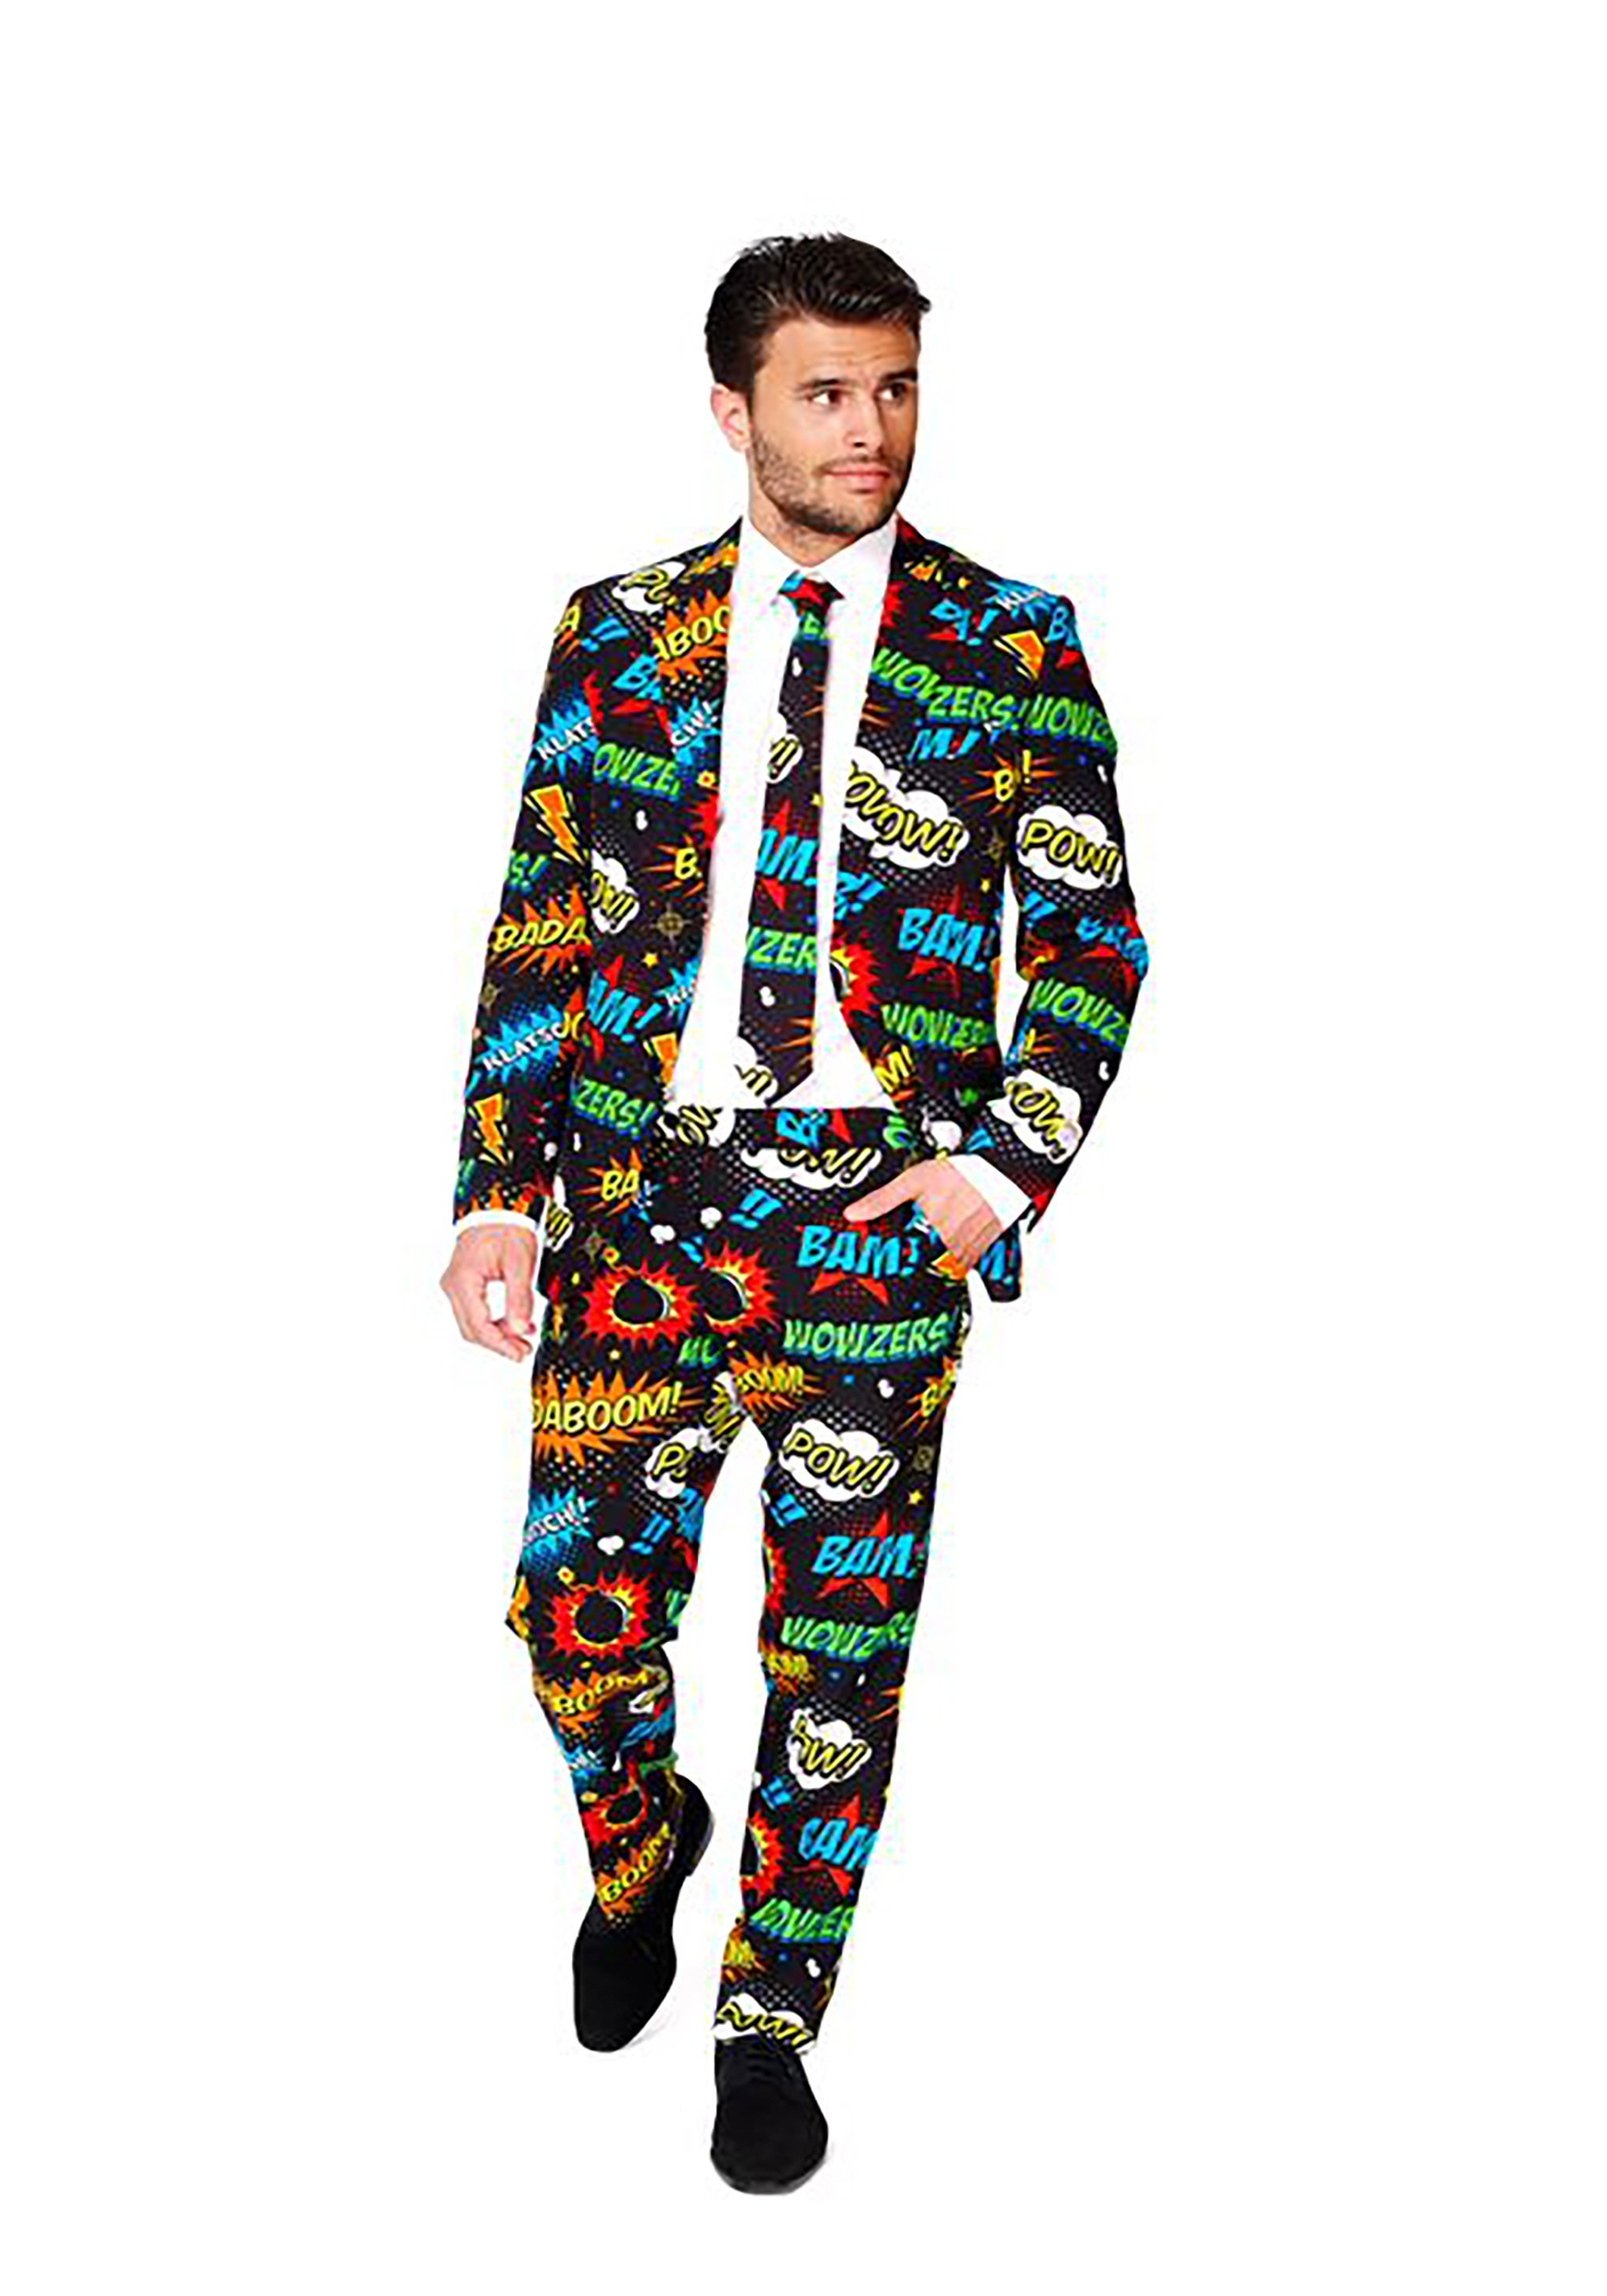 opposuits-badaboom-comic-suit-halloween-suits